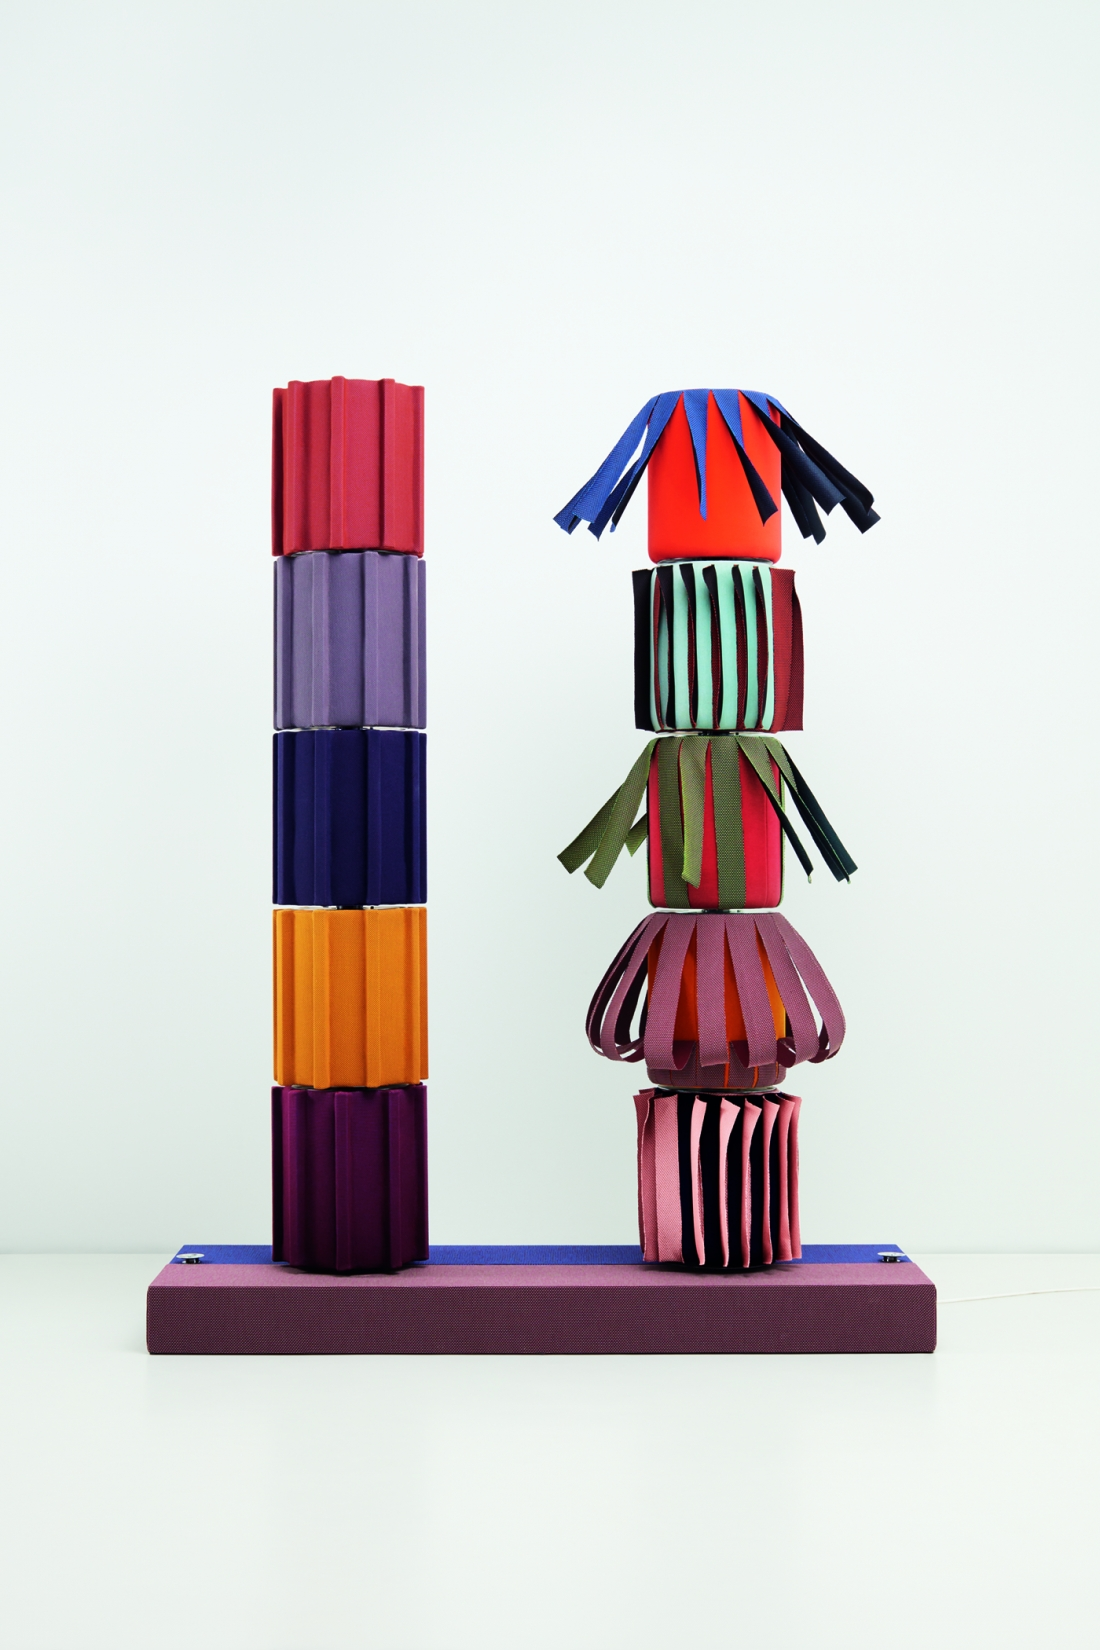 Knit Project - Objects of Common Interest Doric Columns Kinetic Object 2020 Copyright Luke Evans